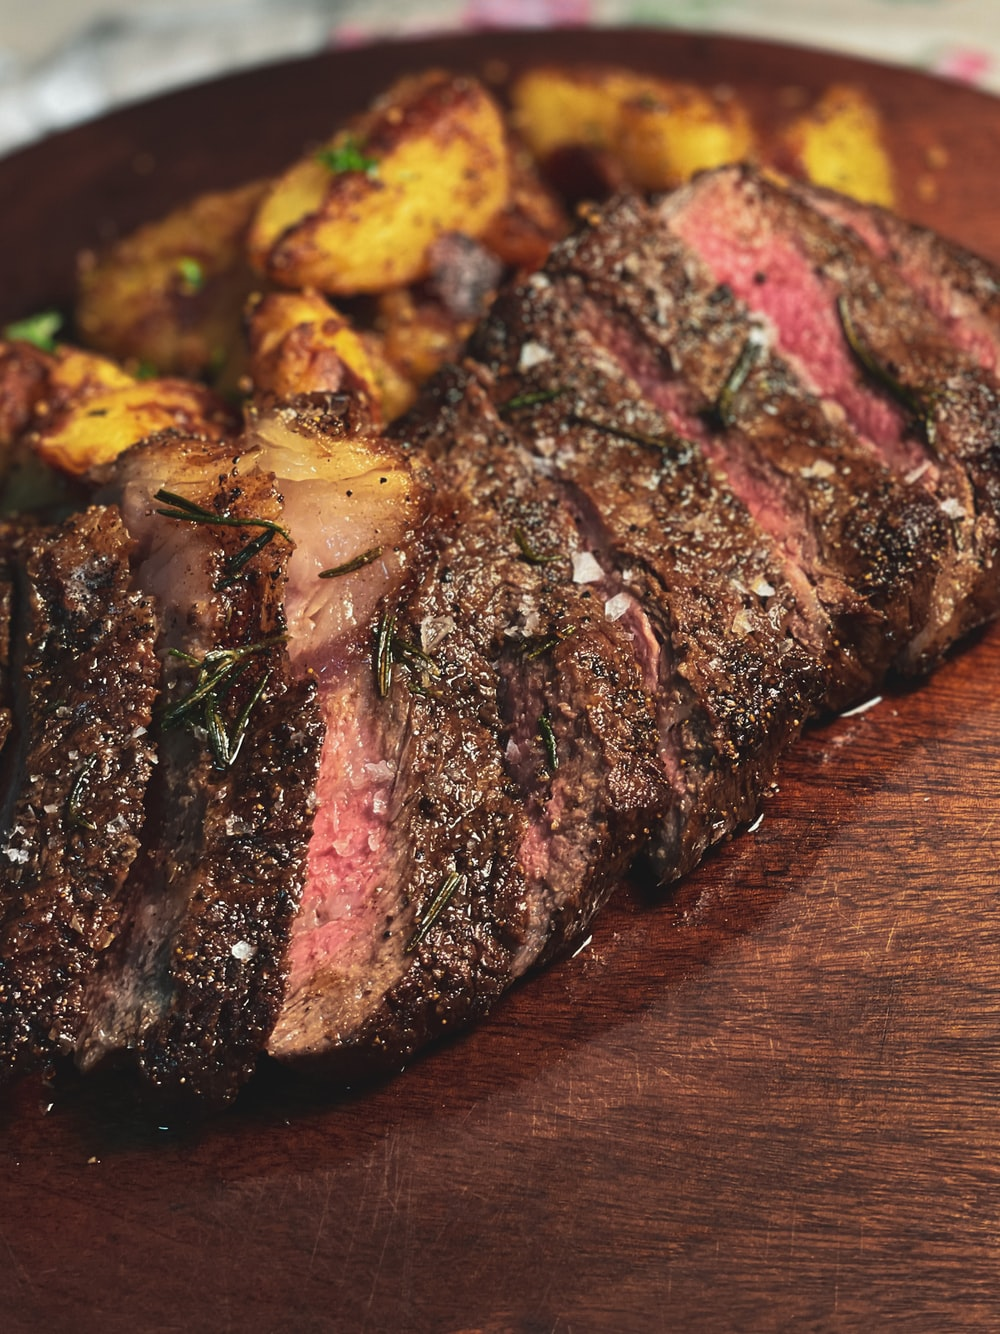 grilled meat on brown wooden table